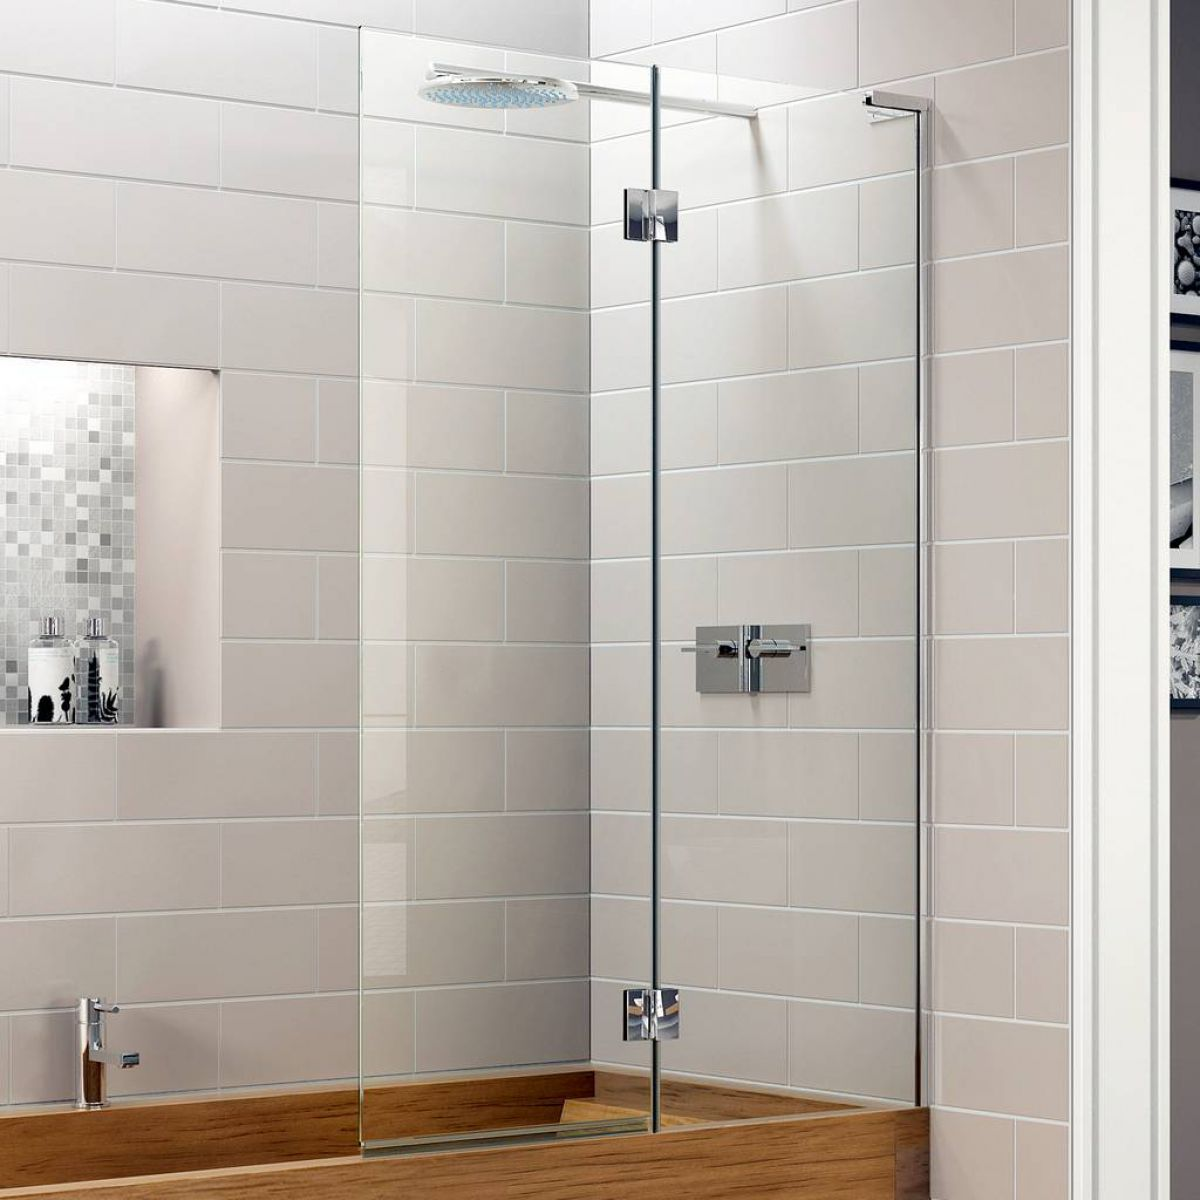 Matki Eauzone Plus Inward Opening Two Panel Bath Screen